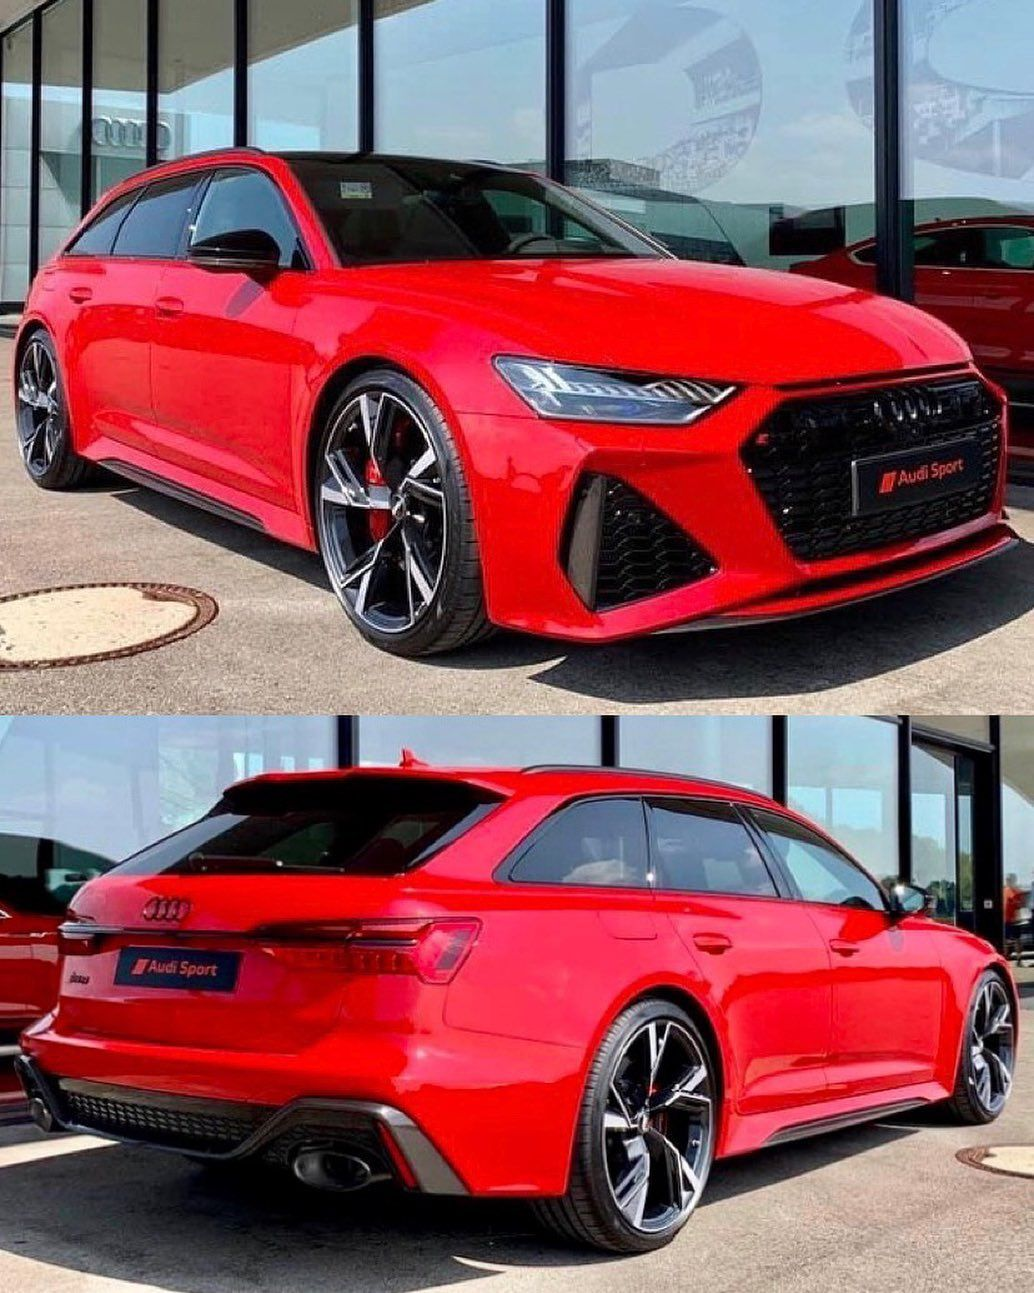 The New 2020 Audi Rs6 Avant Spotted Spec D In Red Phot Audi Rs6 Audi Wagon Audi Rs6 Wagon